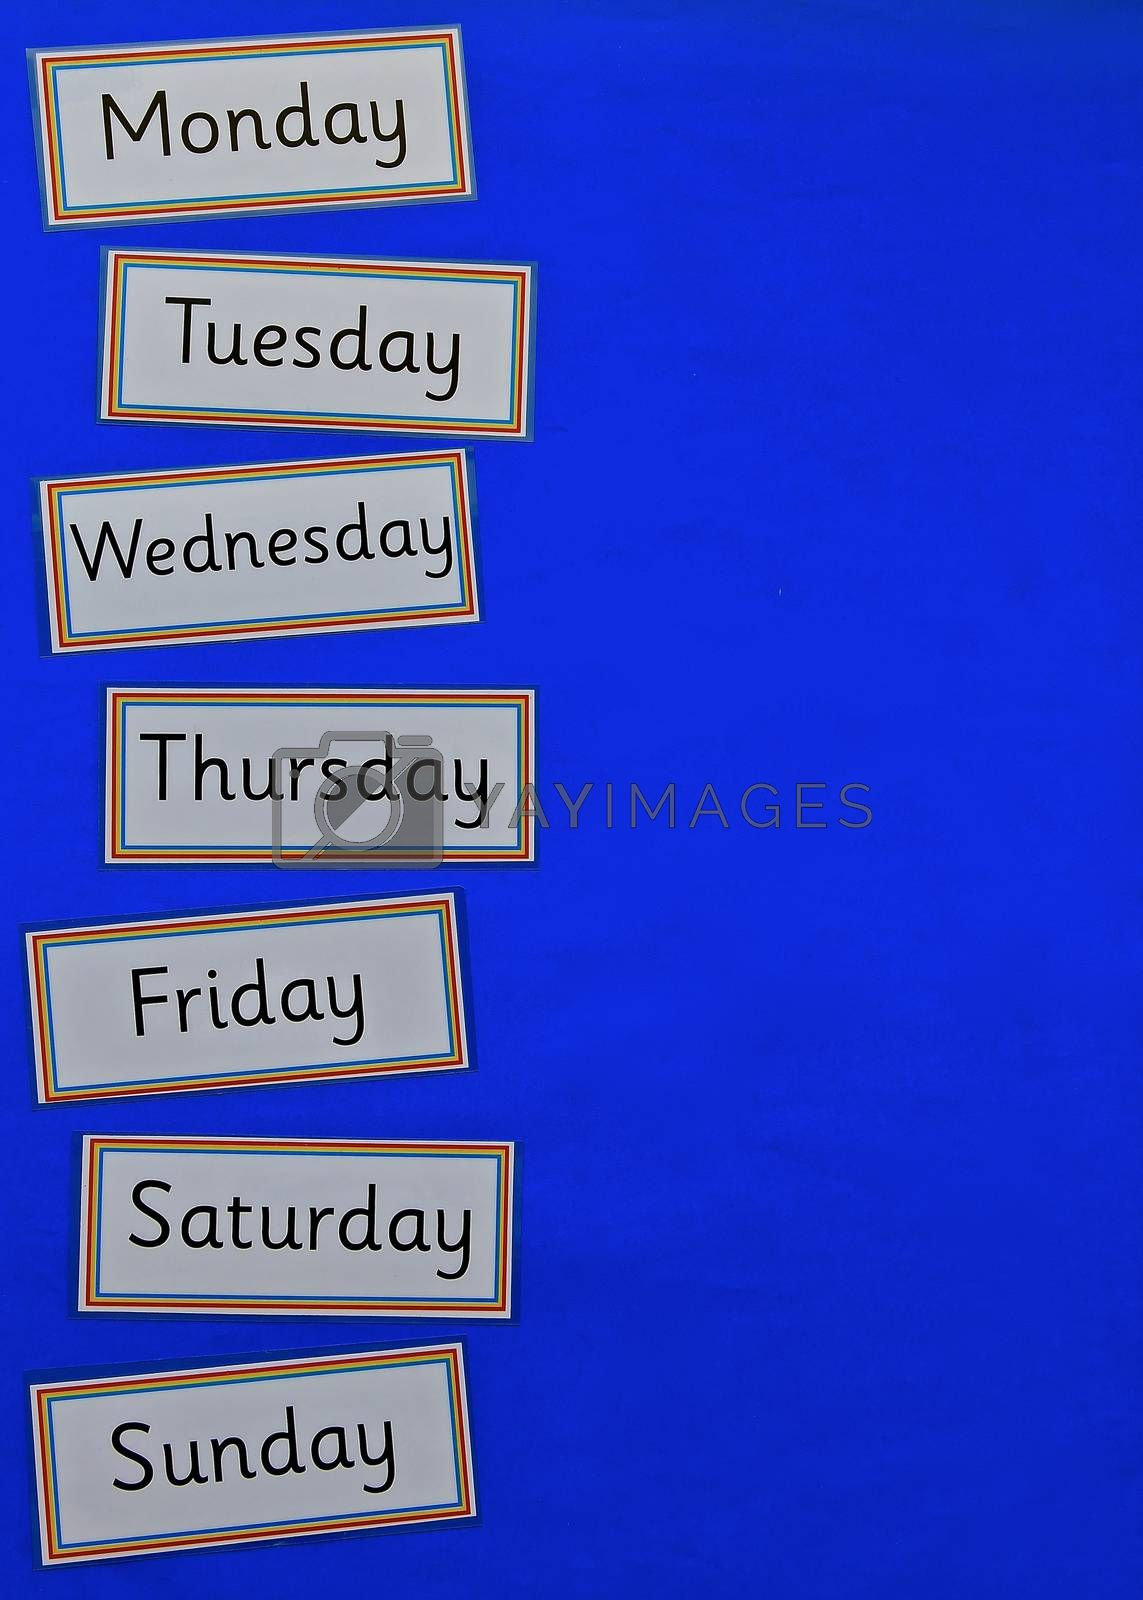 Education concept flatlay with copyspace on a blue background, with the days of the week.